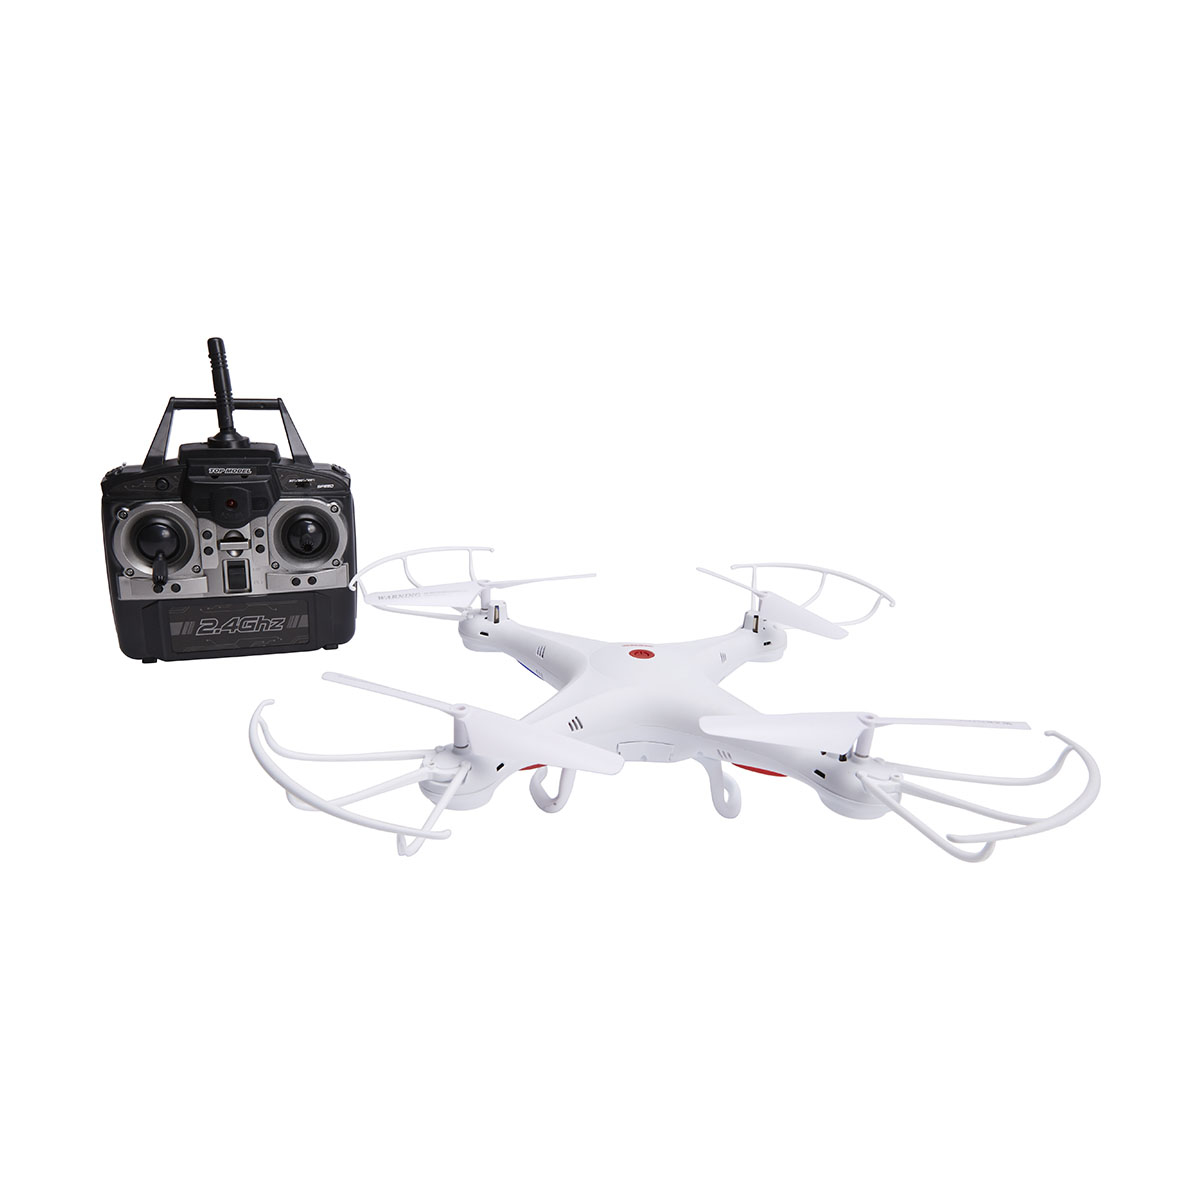 2.4GHz 6-Axis Quadcopter